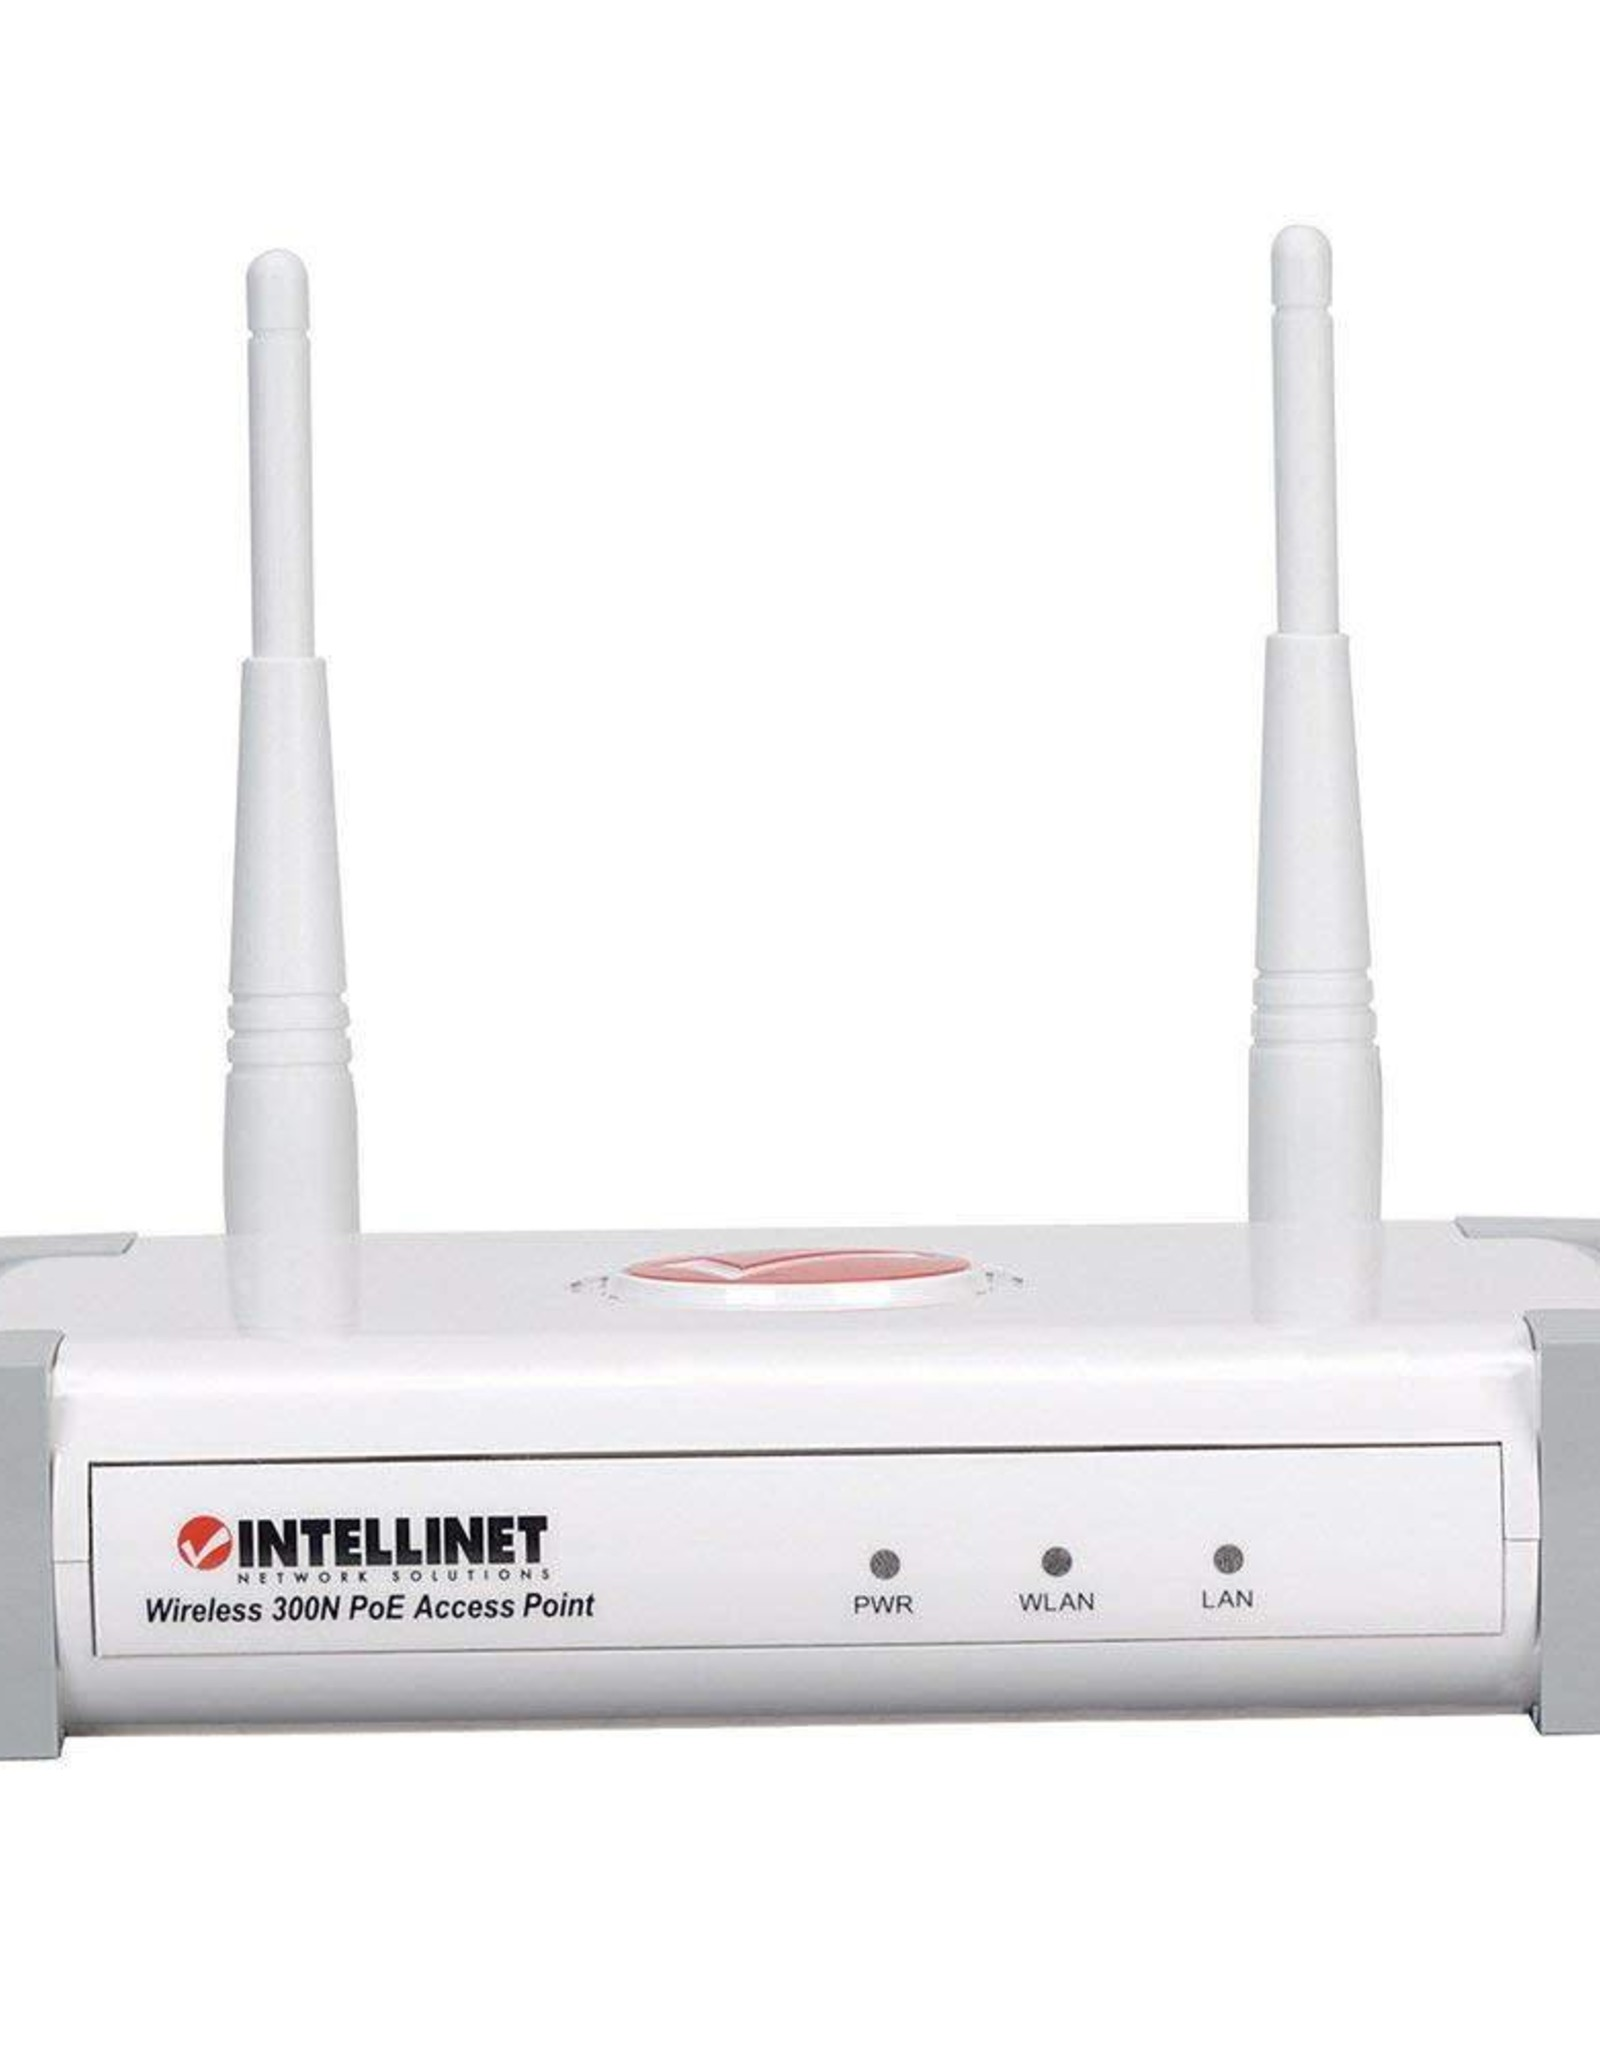 300N PoE Wireless Access Point